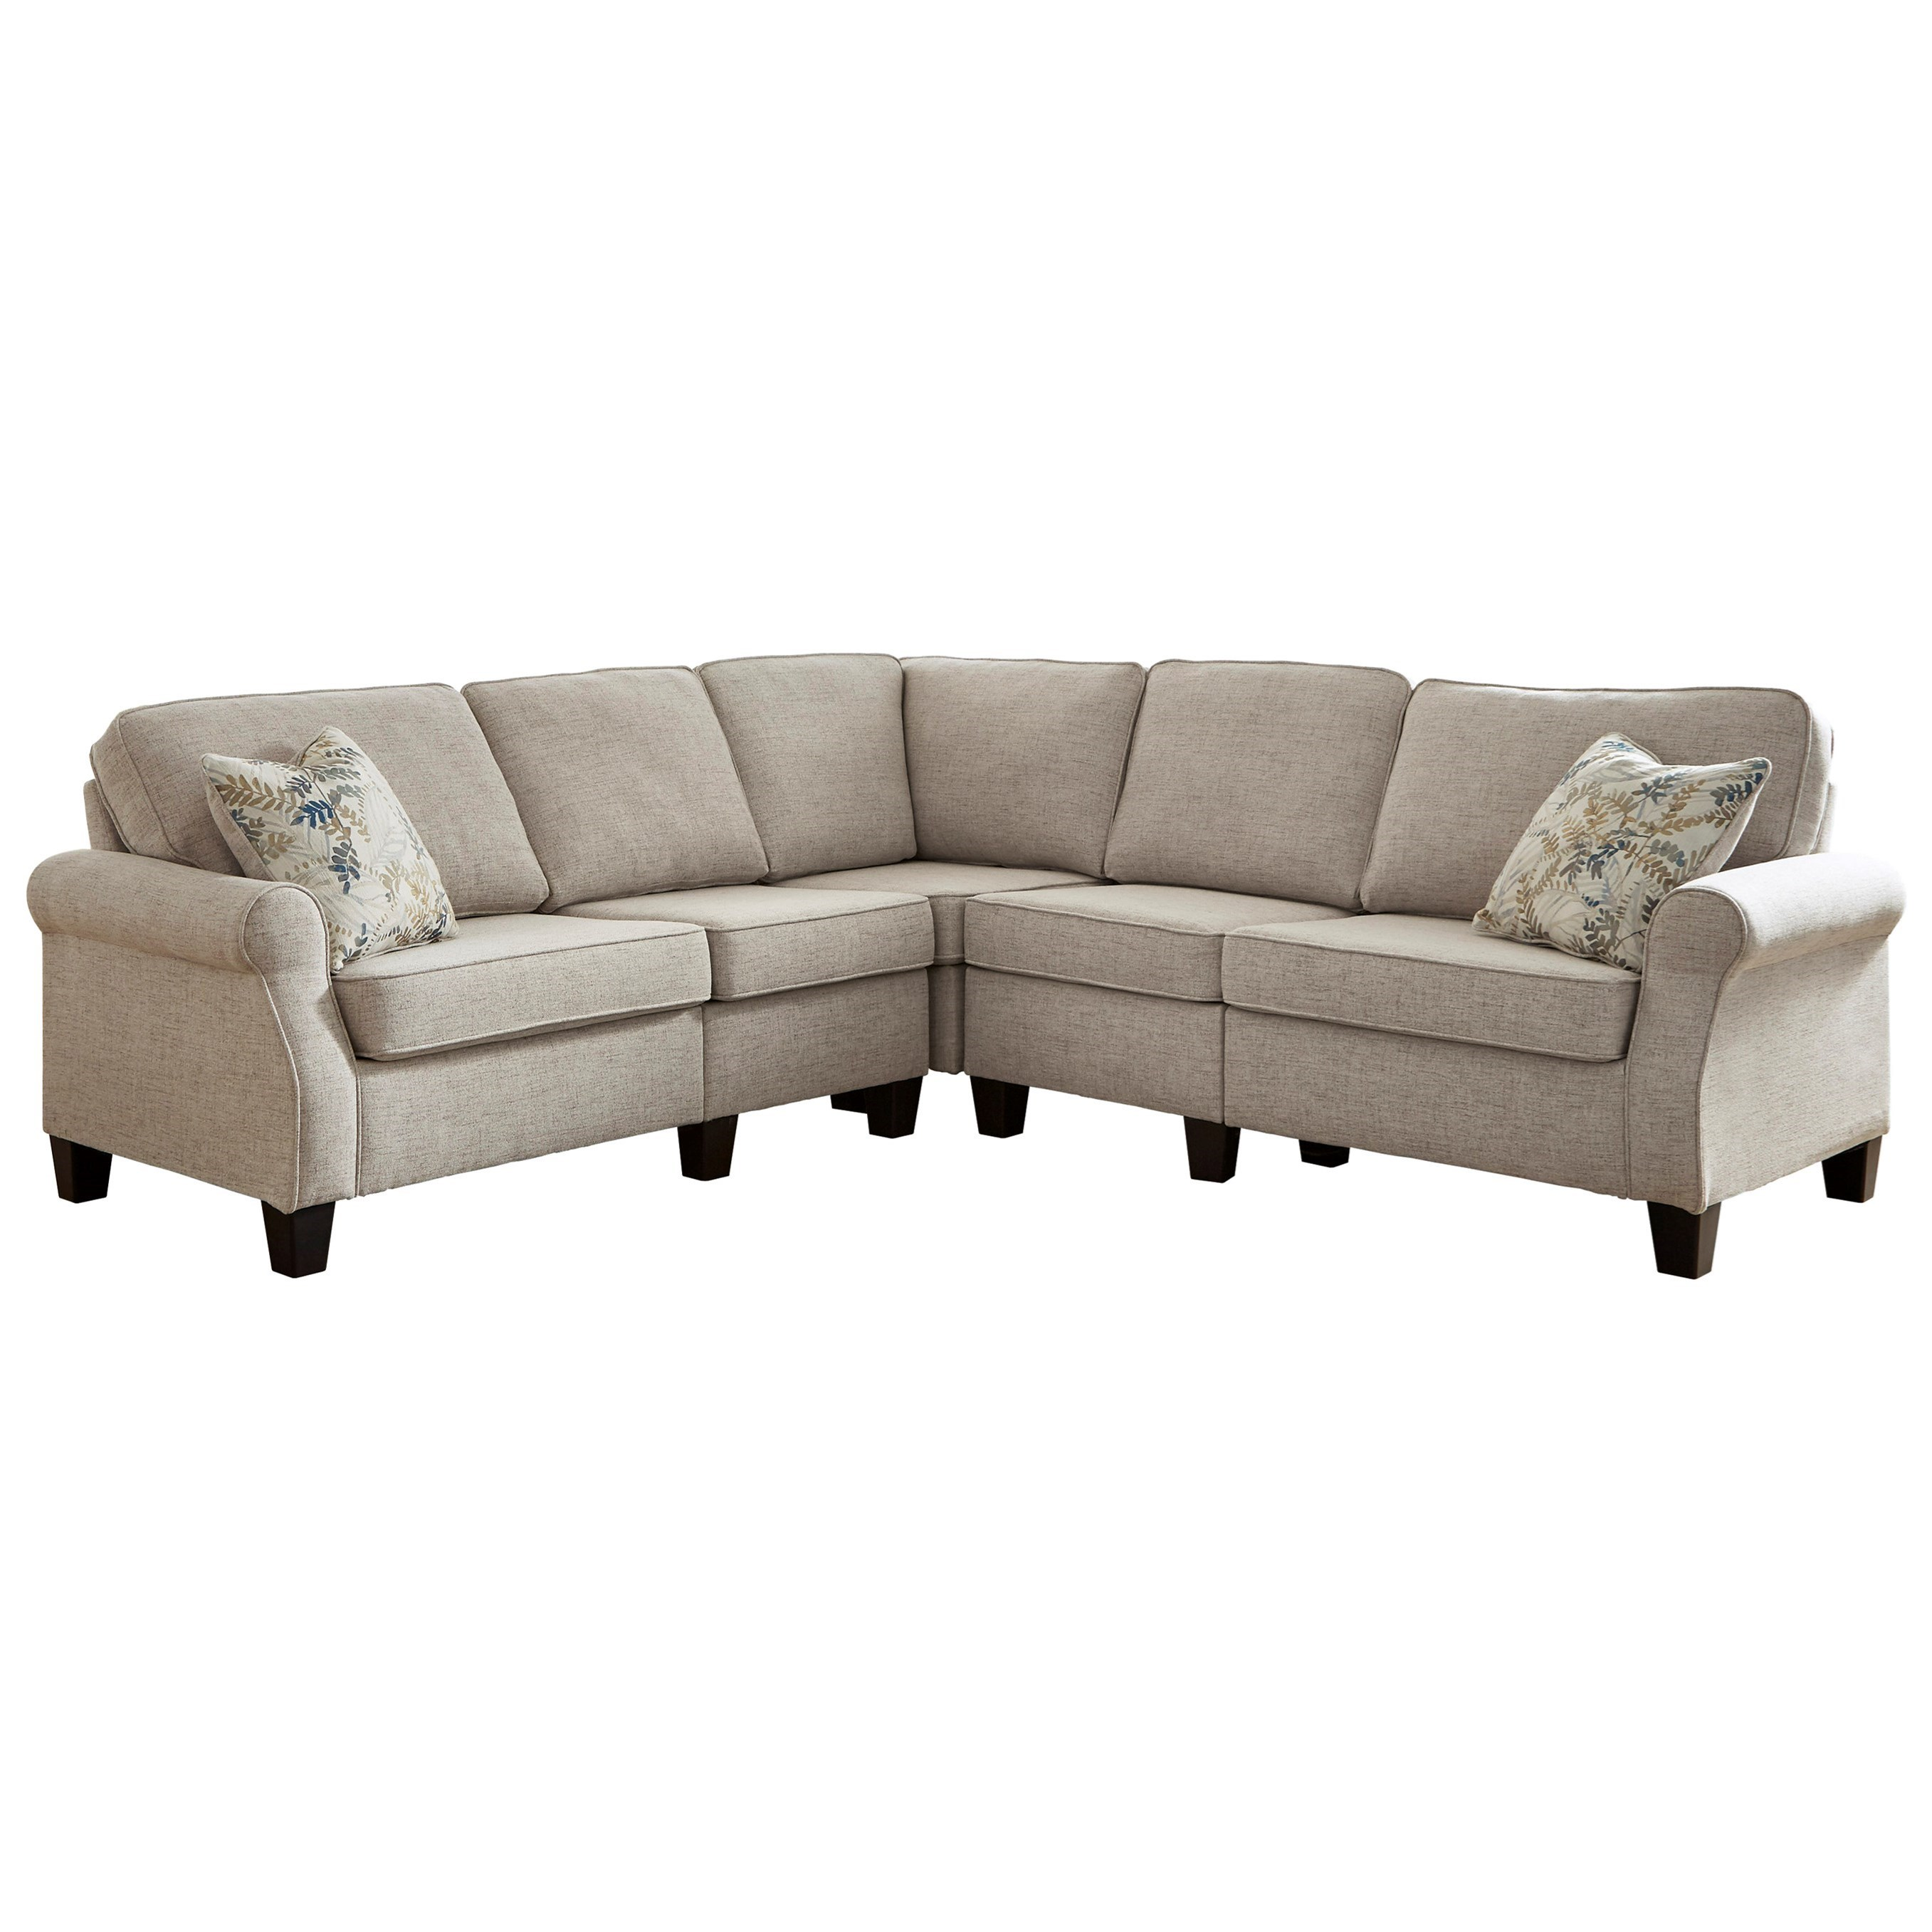 Alessio L-Shape Sectional by Signature Design at Fisher Home Furnishings